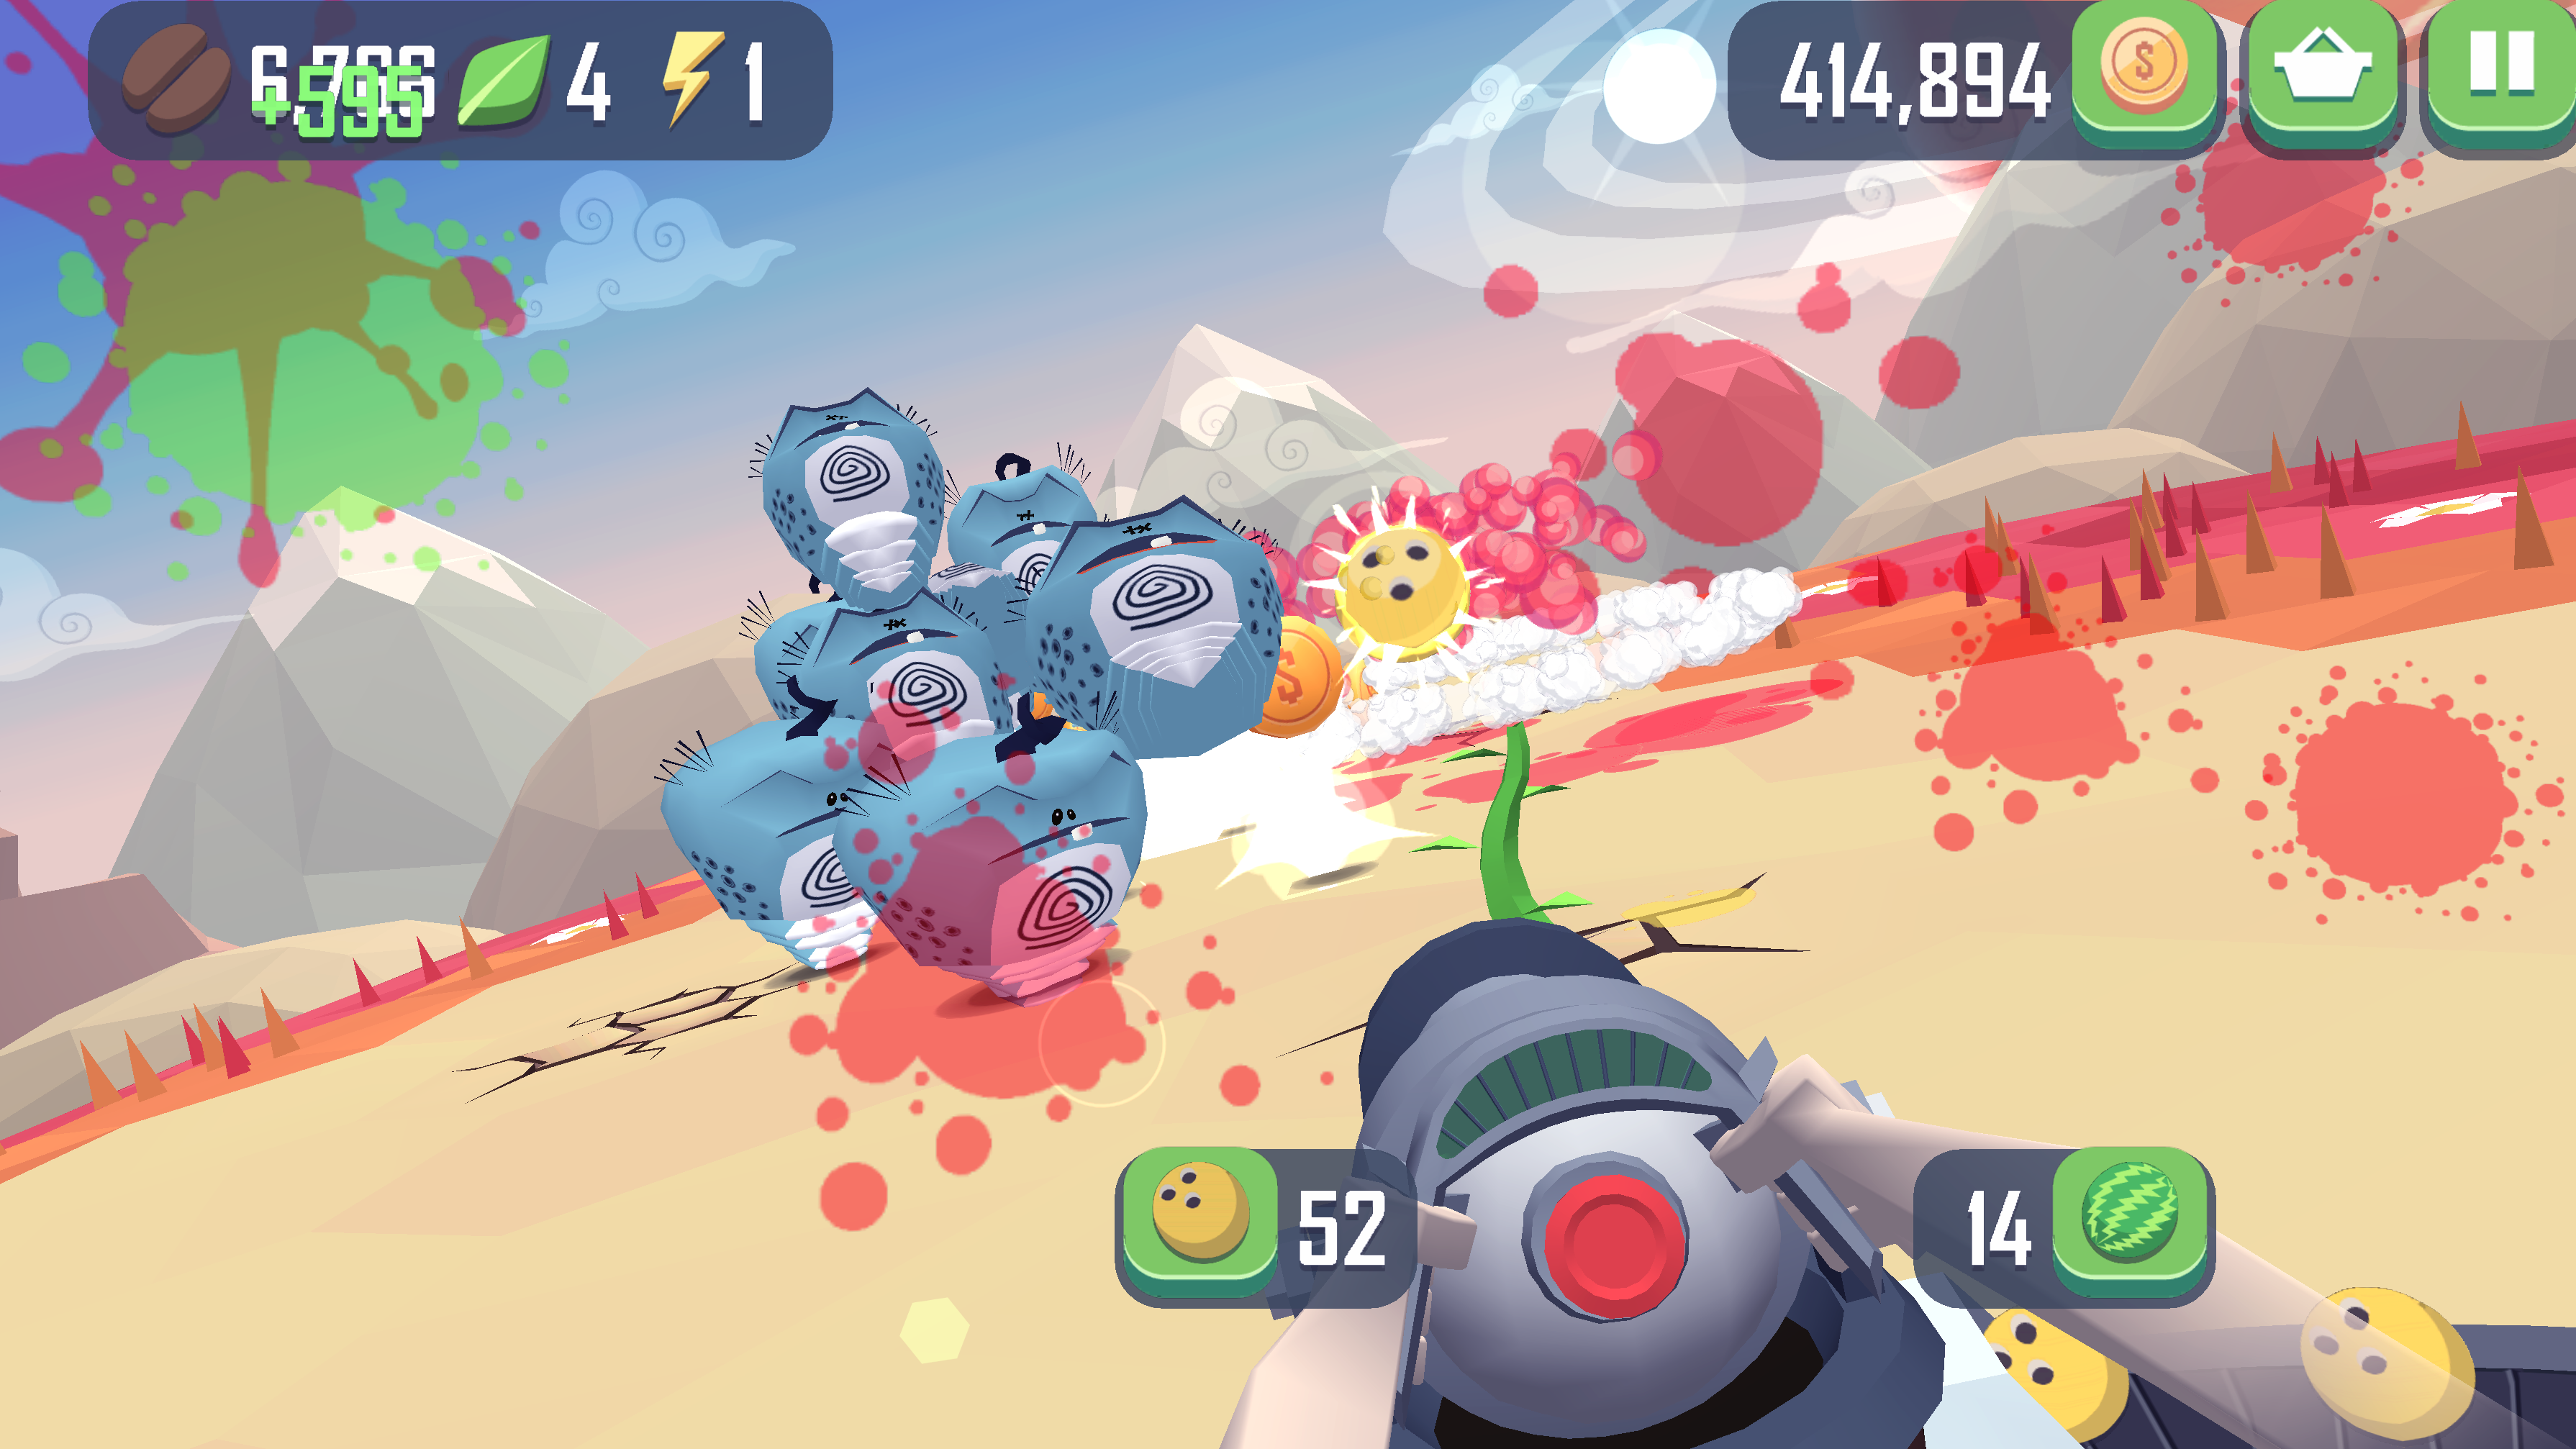 Take on hordes of cute aliens in colorful shooter Smash Anarchy